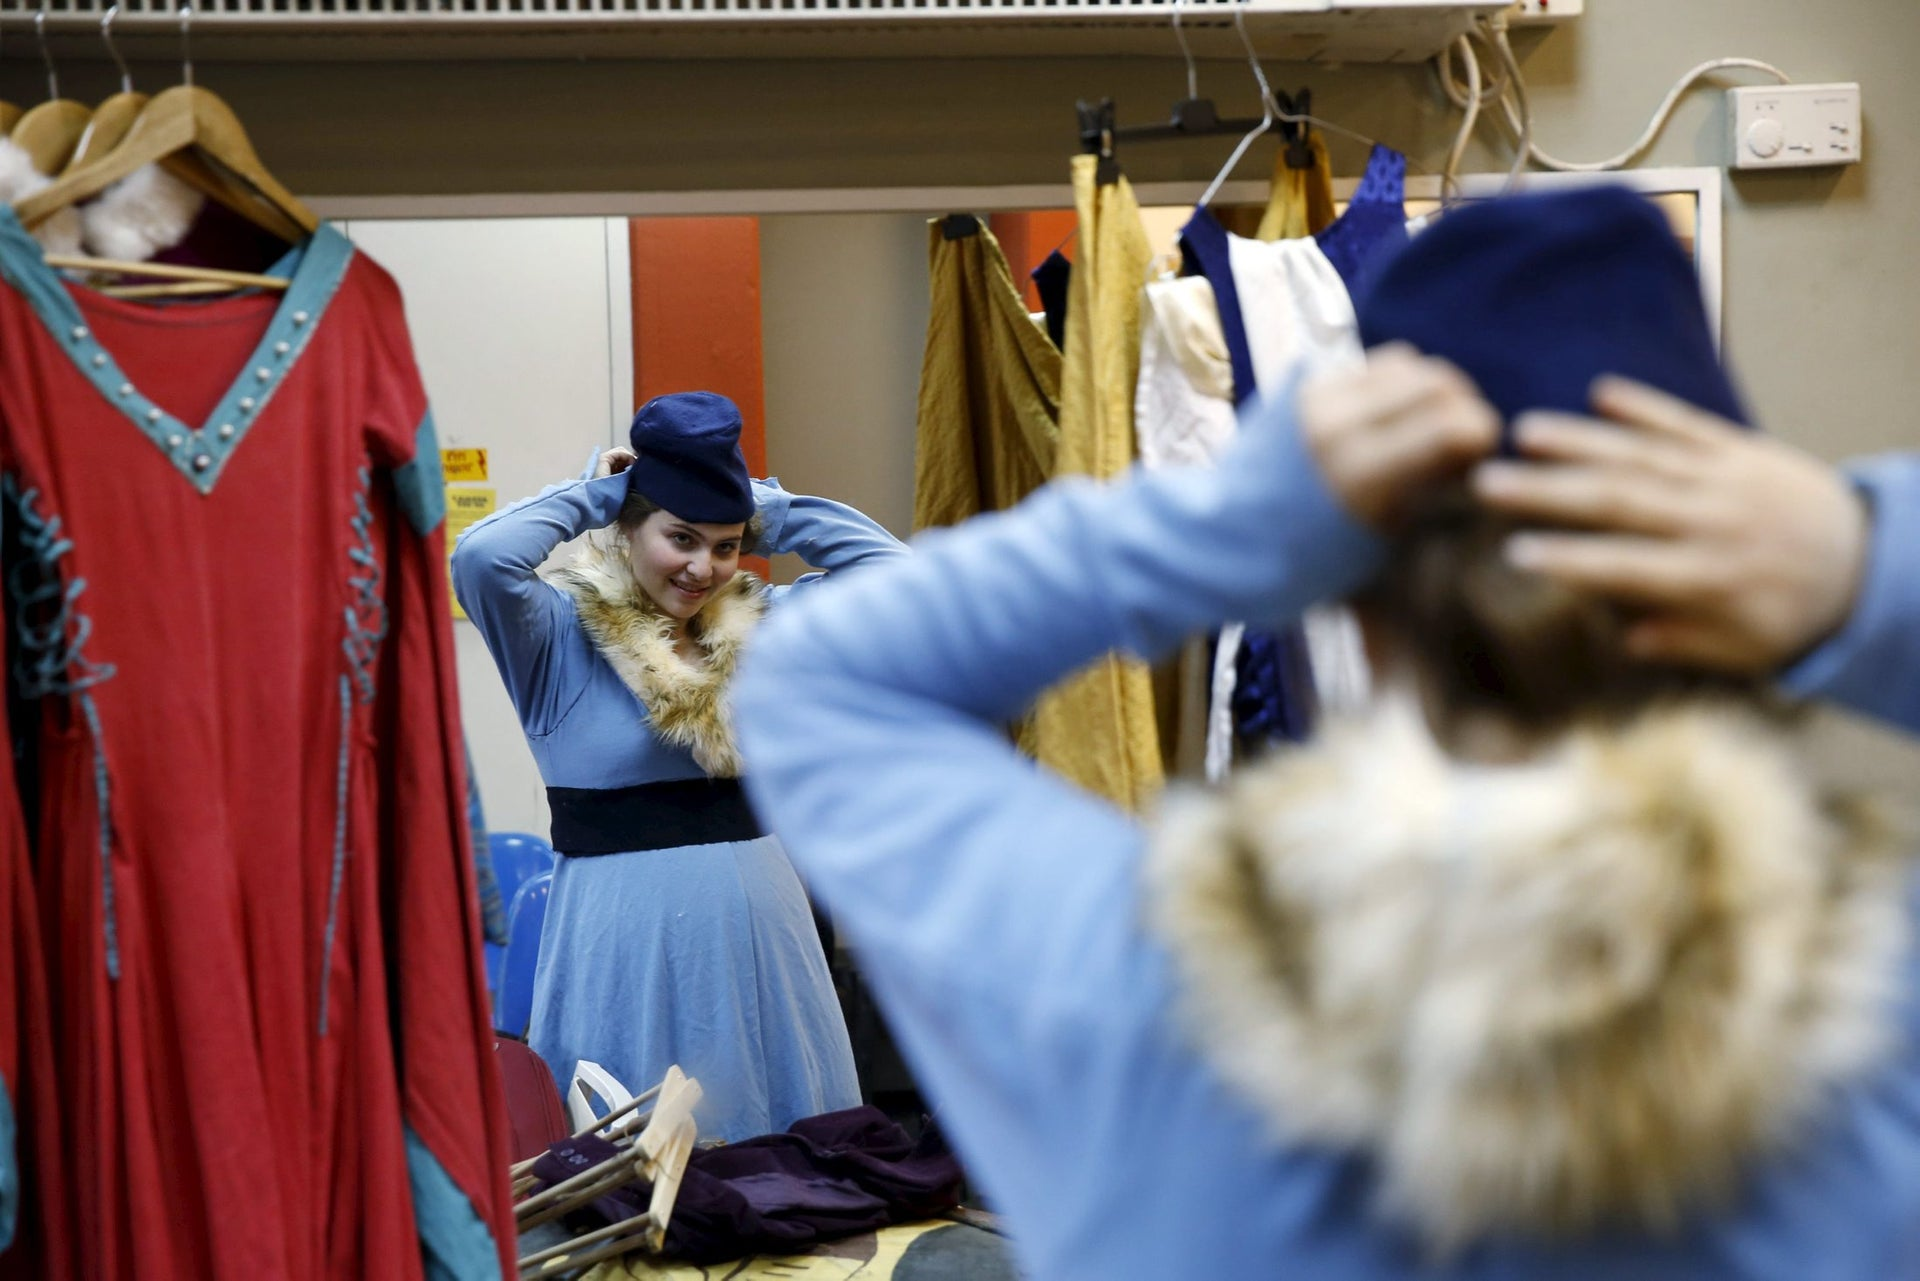 A woman checks out her costume in the mirror before an international medieval tournament in Tel Aviv, January 23, 2016.